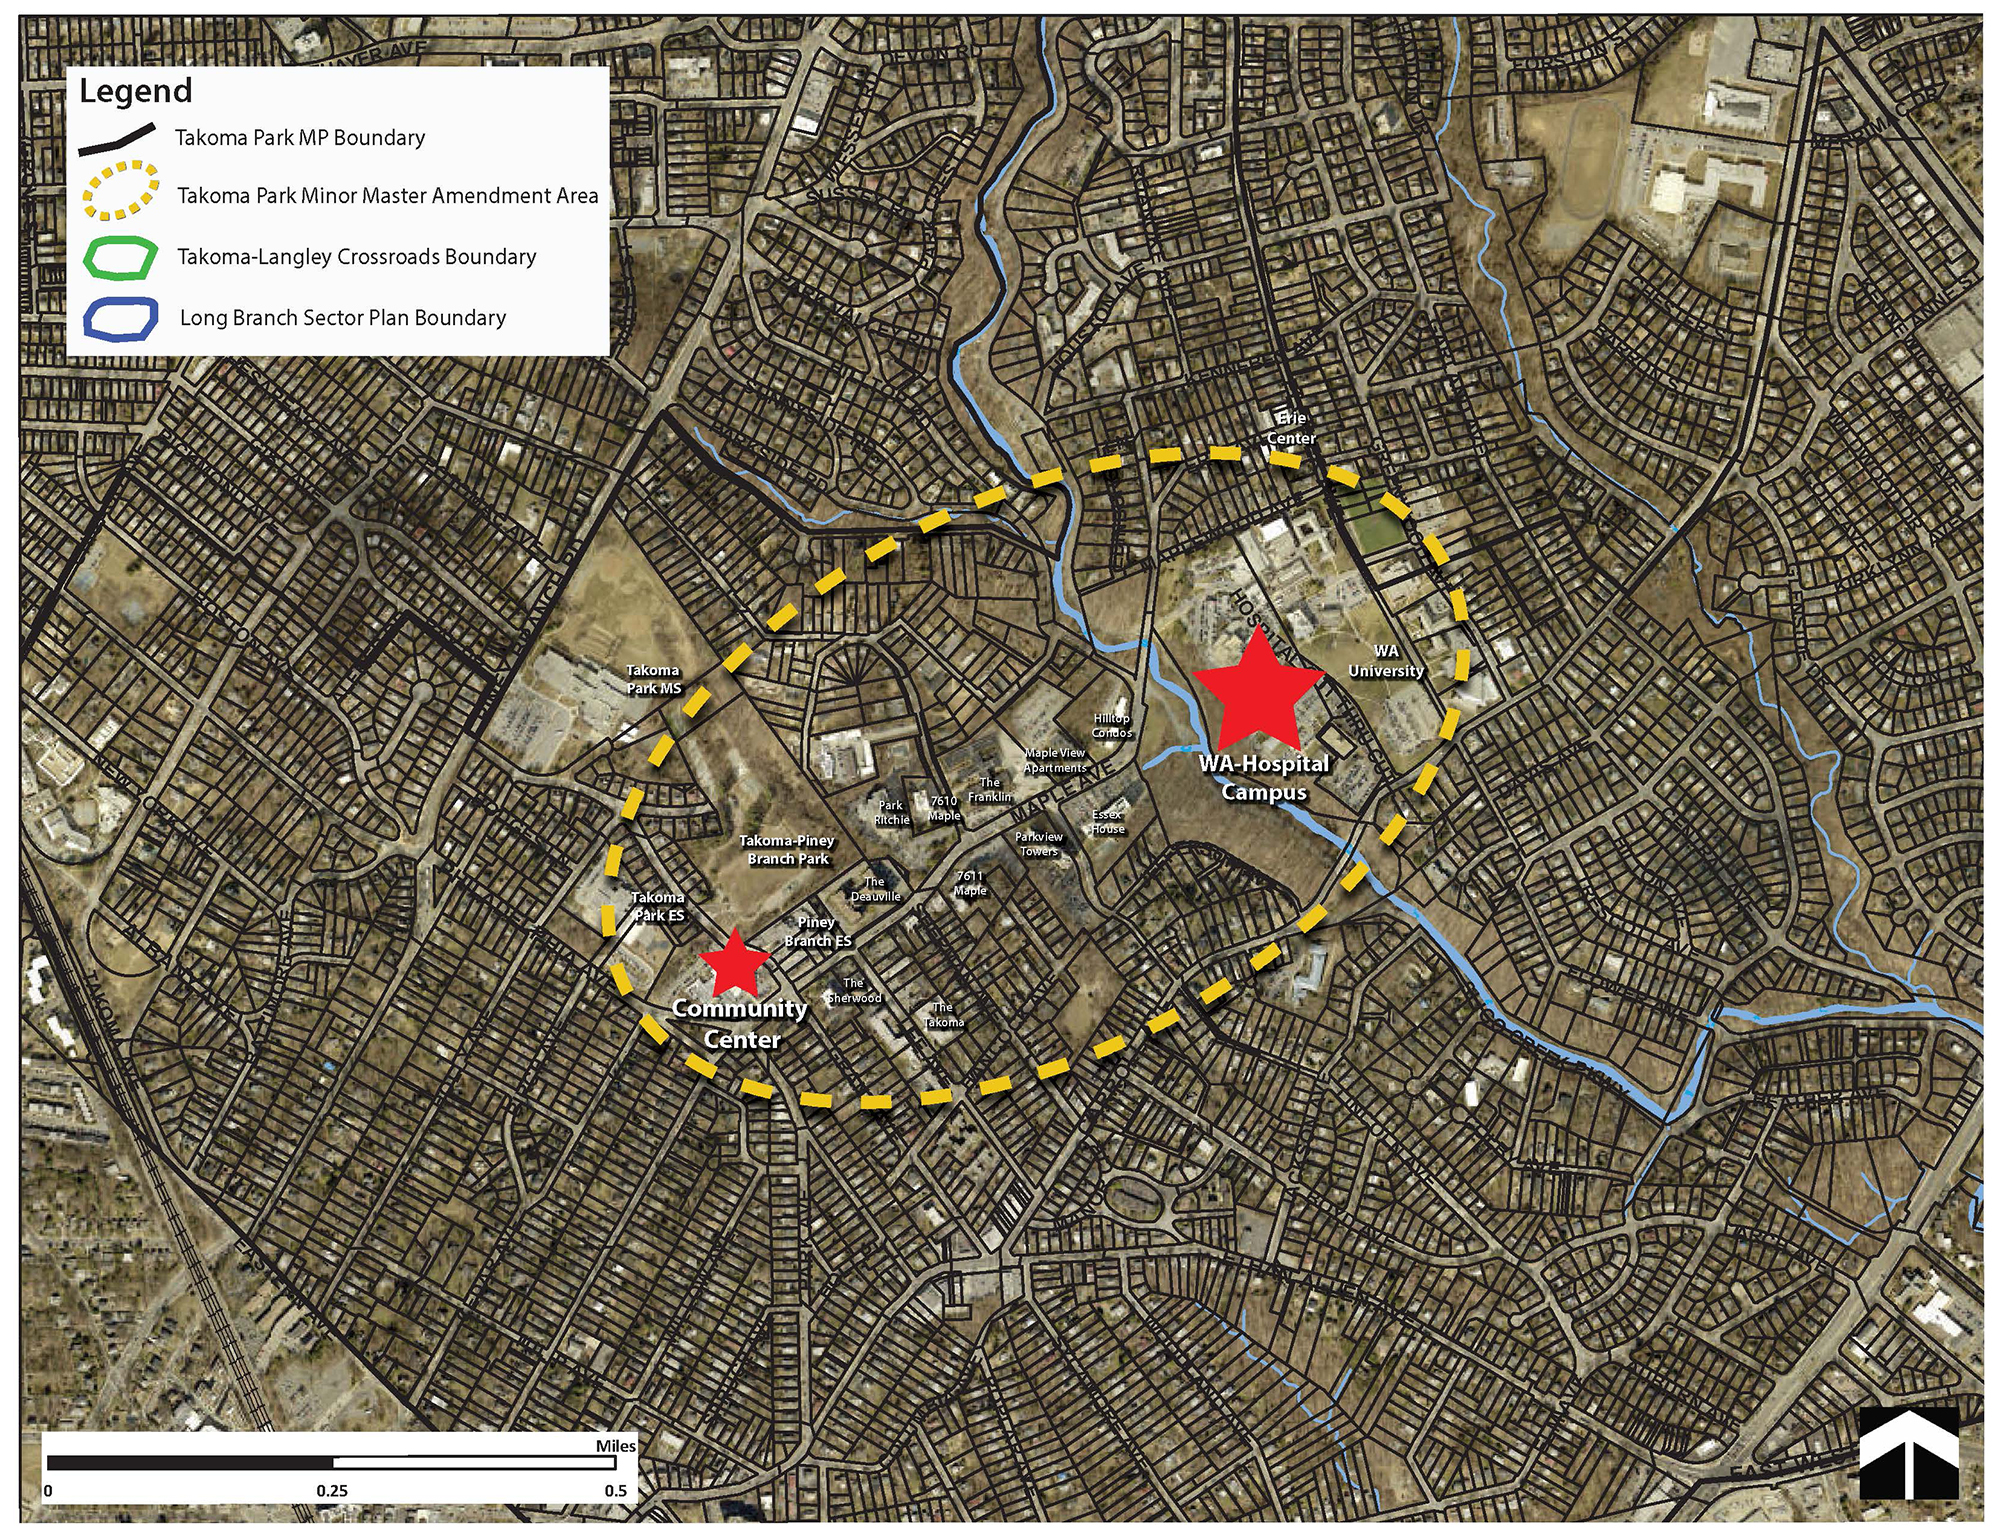 The plan boundary has not yet been finalized by the Montgomery Planning Board. This boundary represents a general area of focus